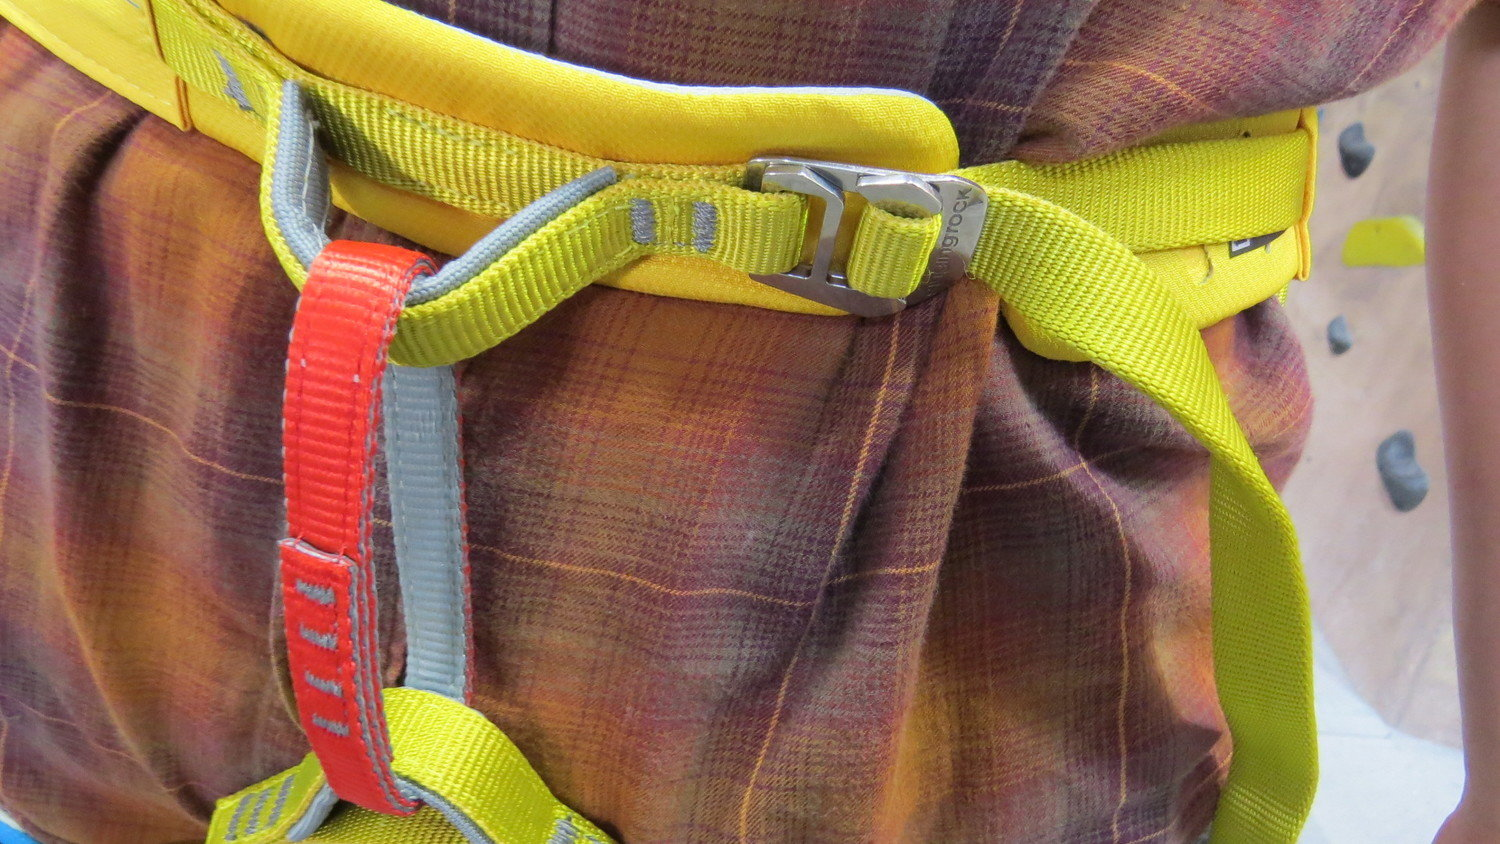 The bright yellow waist belt and red belay loop of the Singing Rock Onyx.   Photo by Liz Thomas.